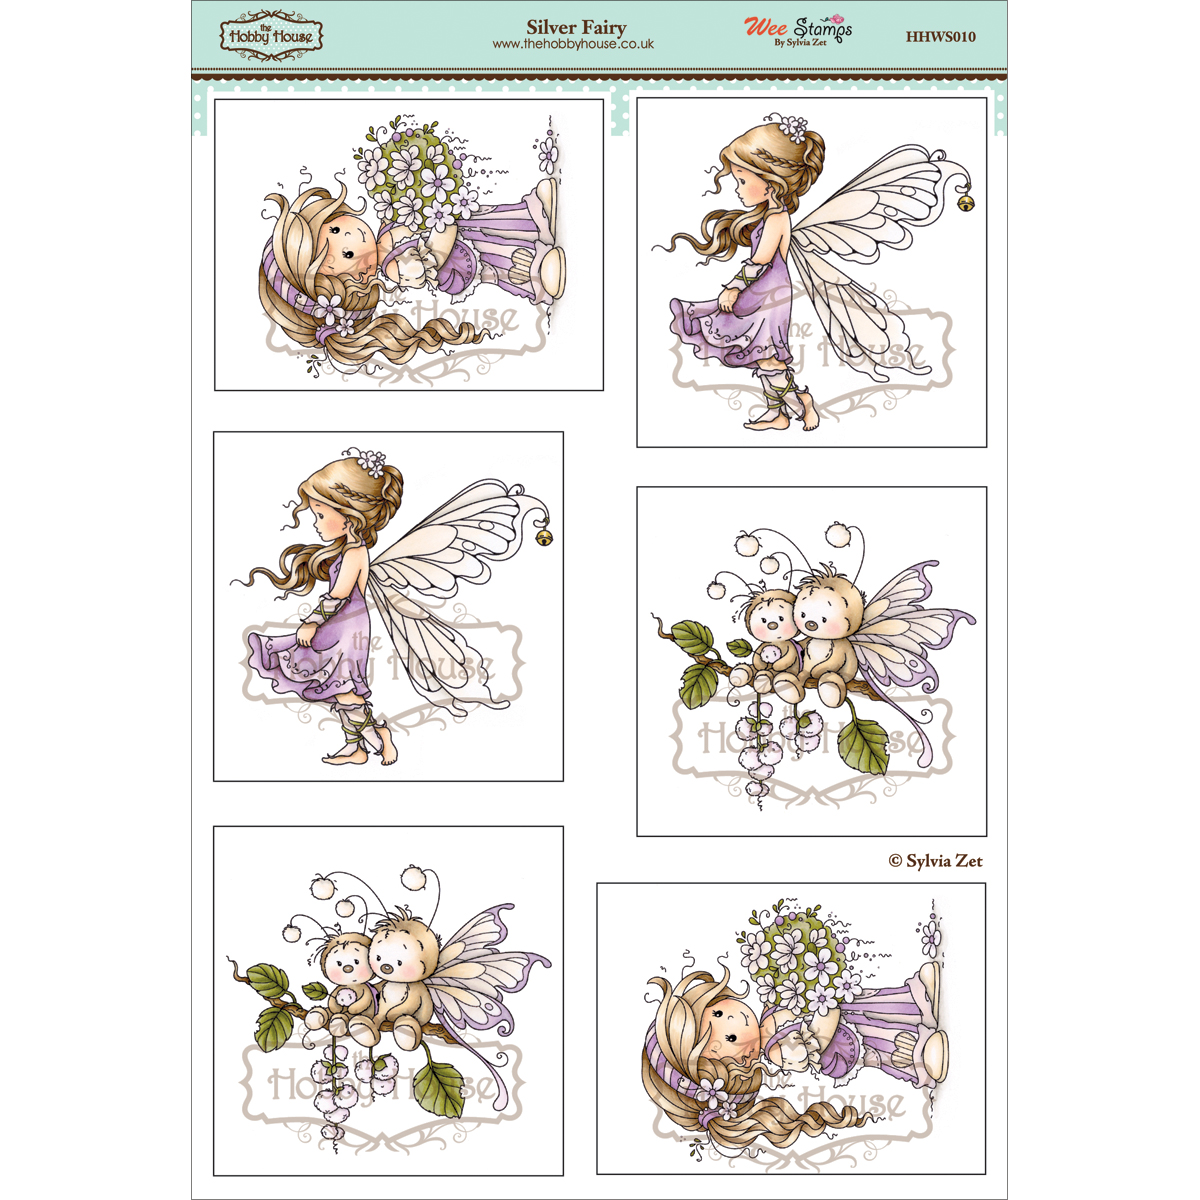 The Hobby House Wee Topper Sheet Silver Fairy